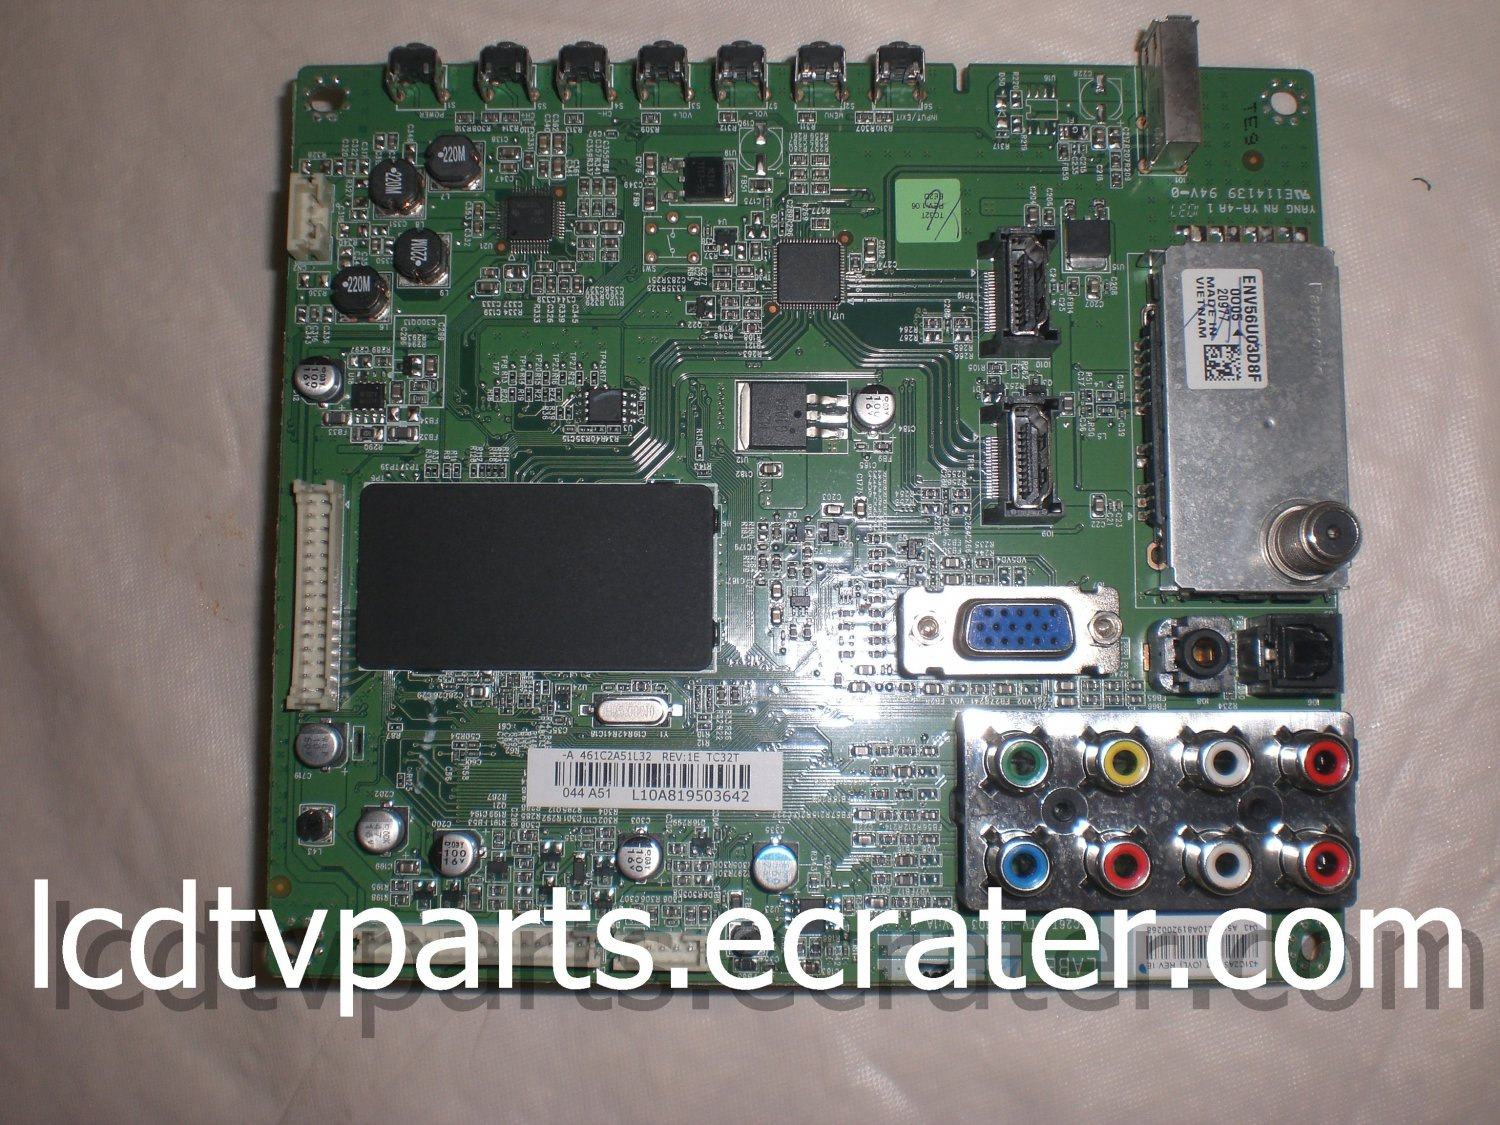 75018047, STC26T VTV-L26603 REV:1A, L10A819503642, Main Board for TOSHIBA 32C100U1